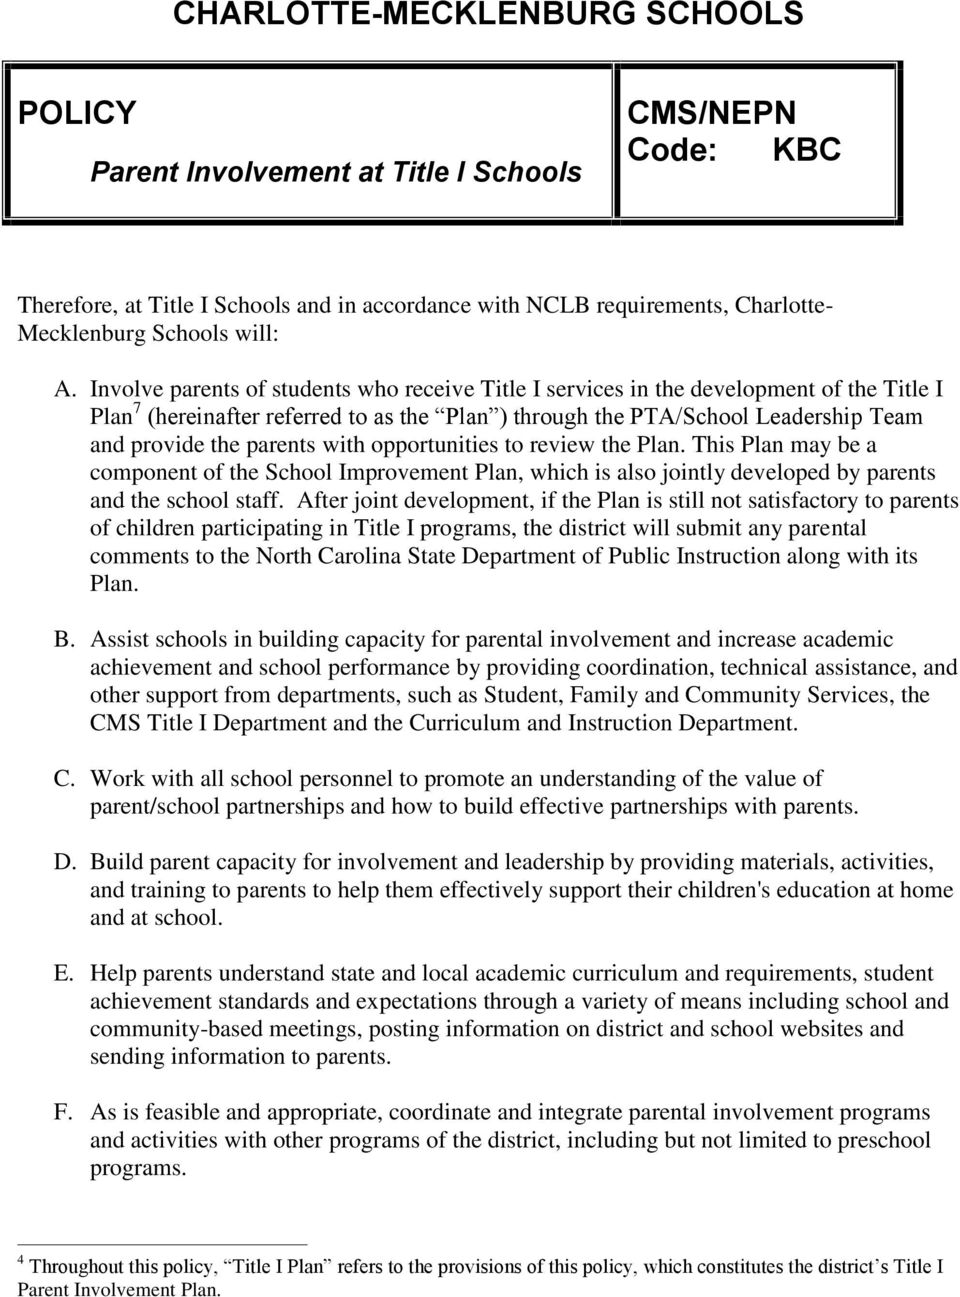 with opportunities to review the Plan. This Plan may be a component of the School Improvement Plan, which is also jointly developed by parents and the school staff.